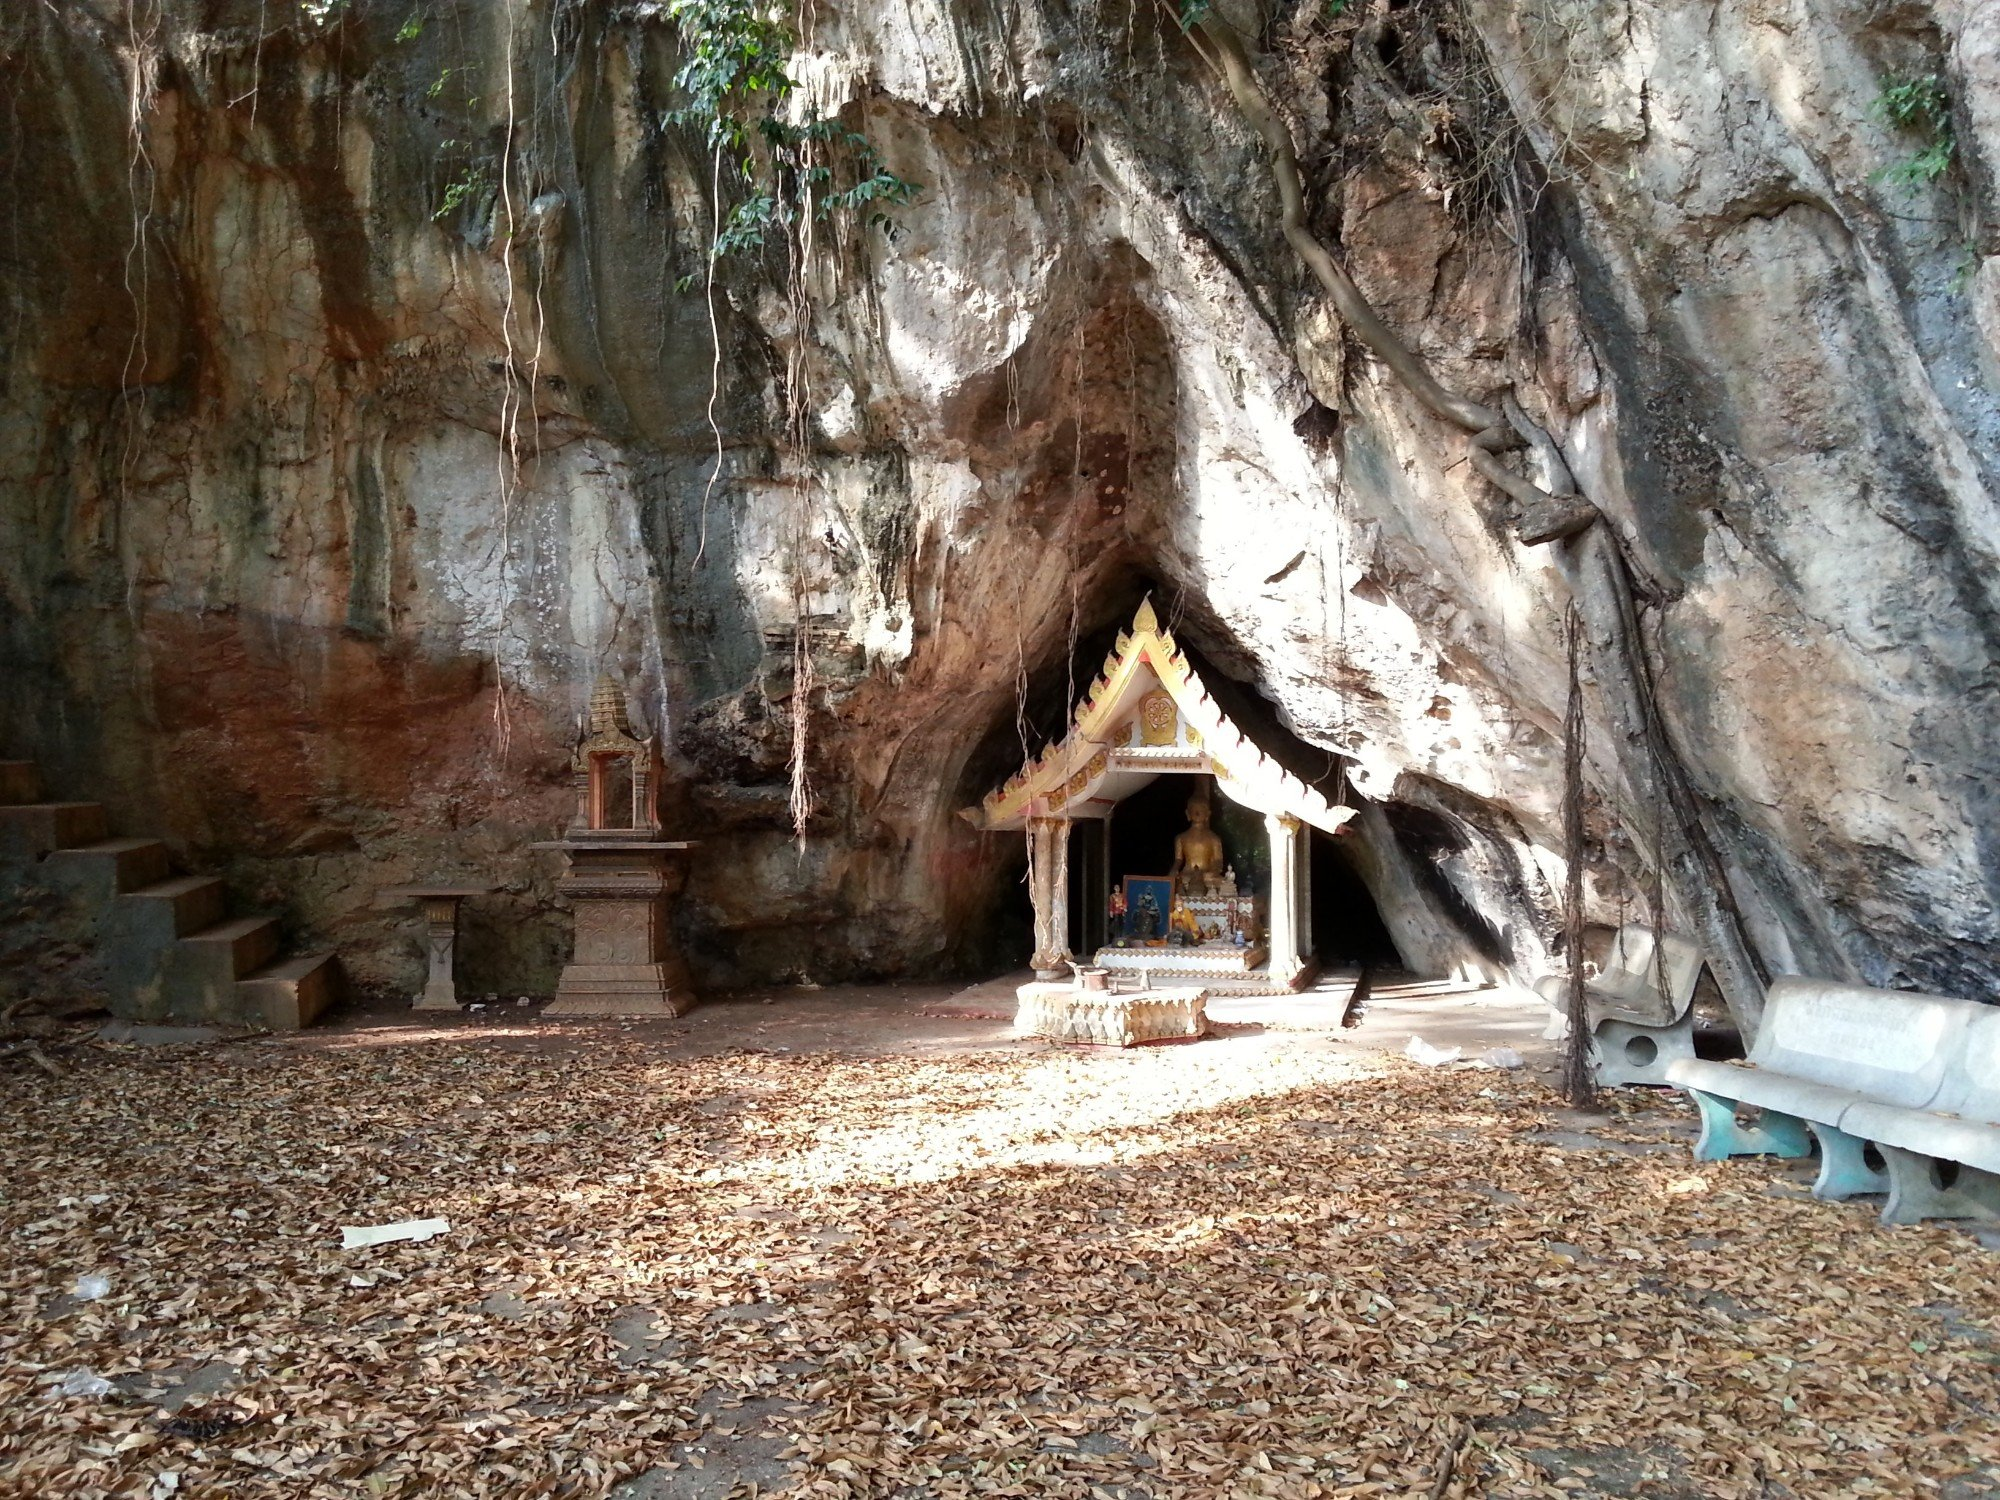 Shrine at Nang Khlot Cave